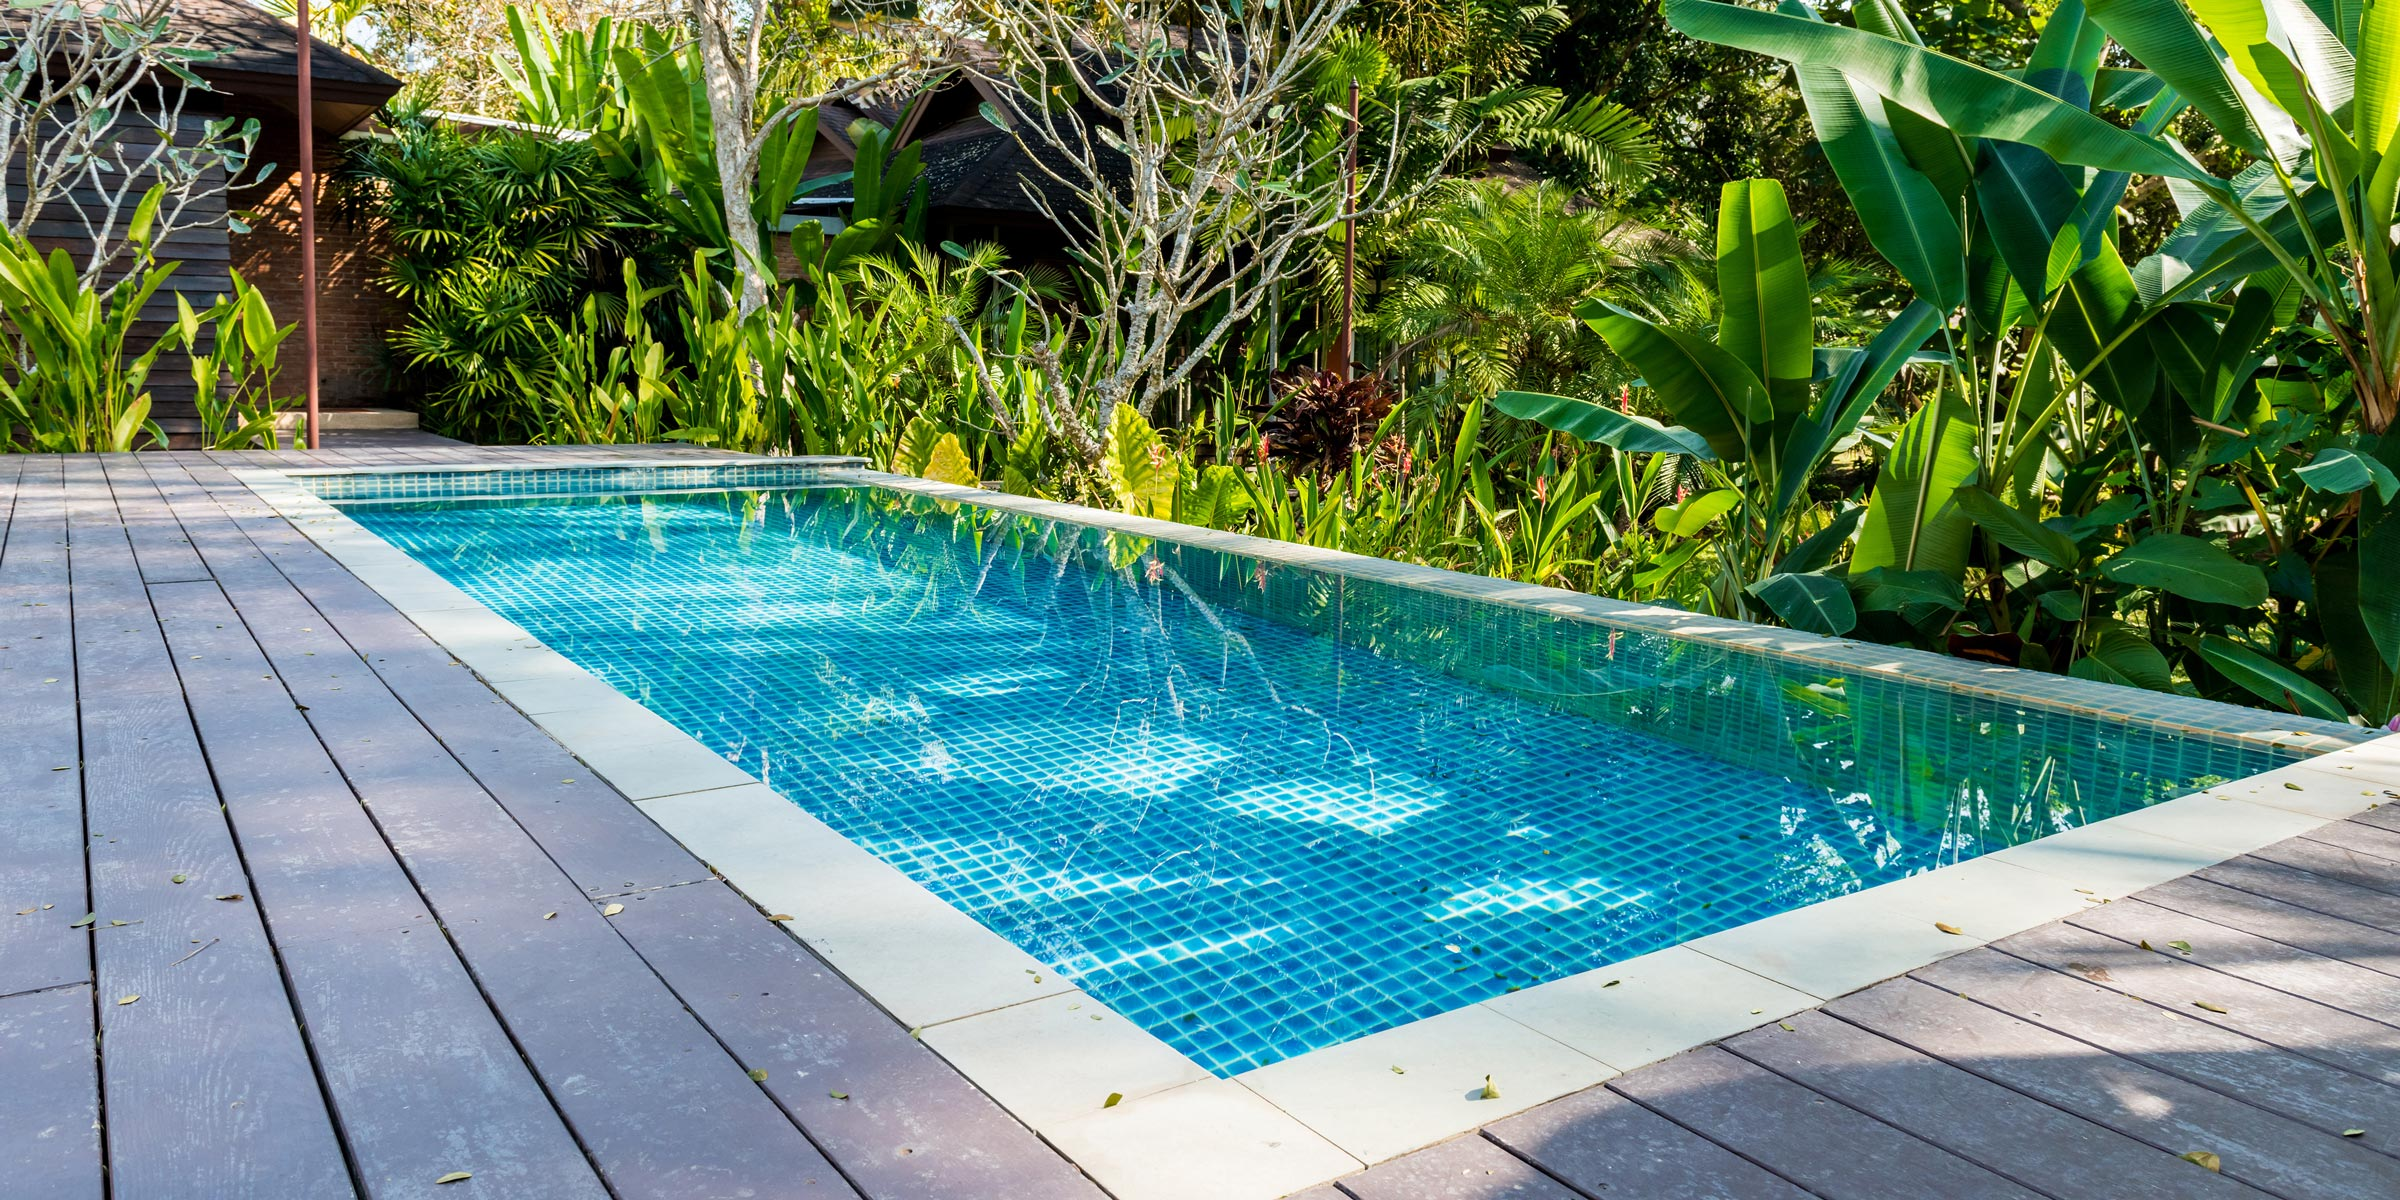 Swimming Pool Installers - What do They do?